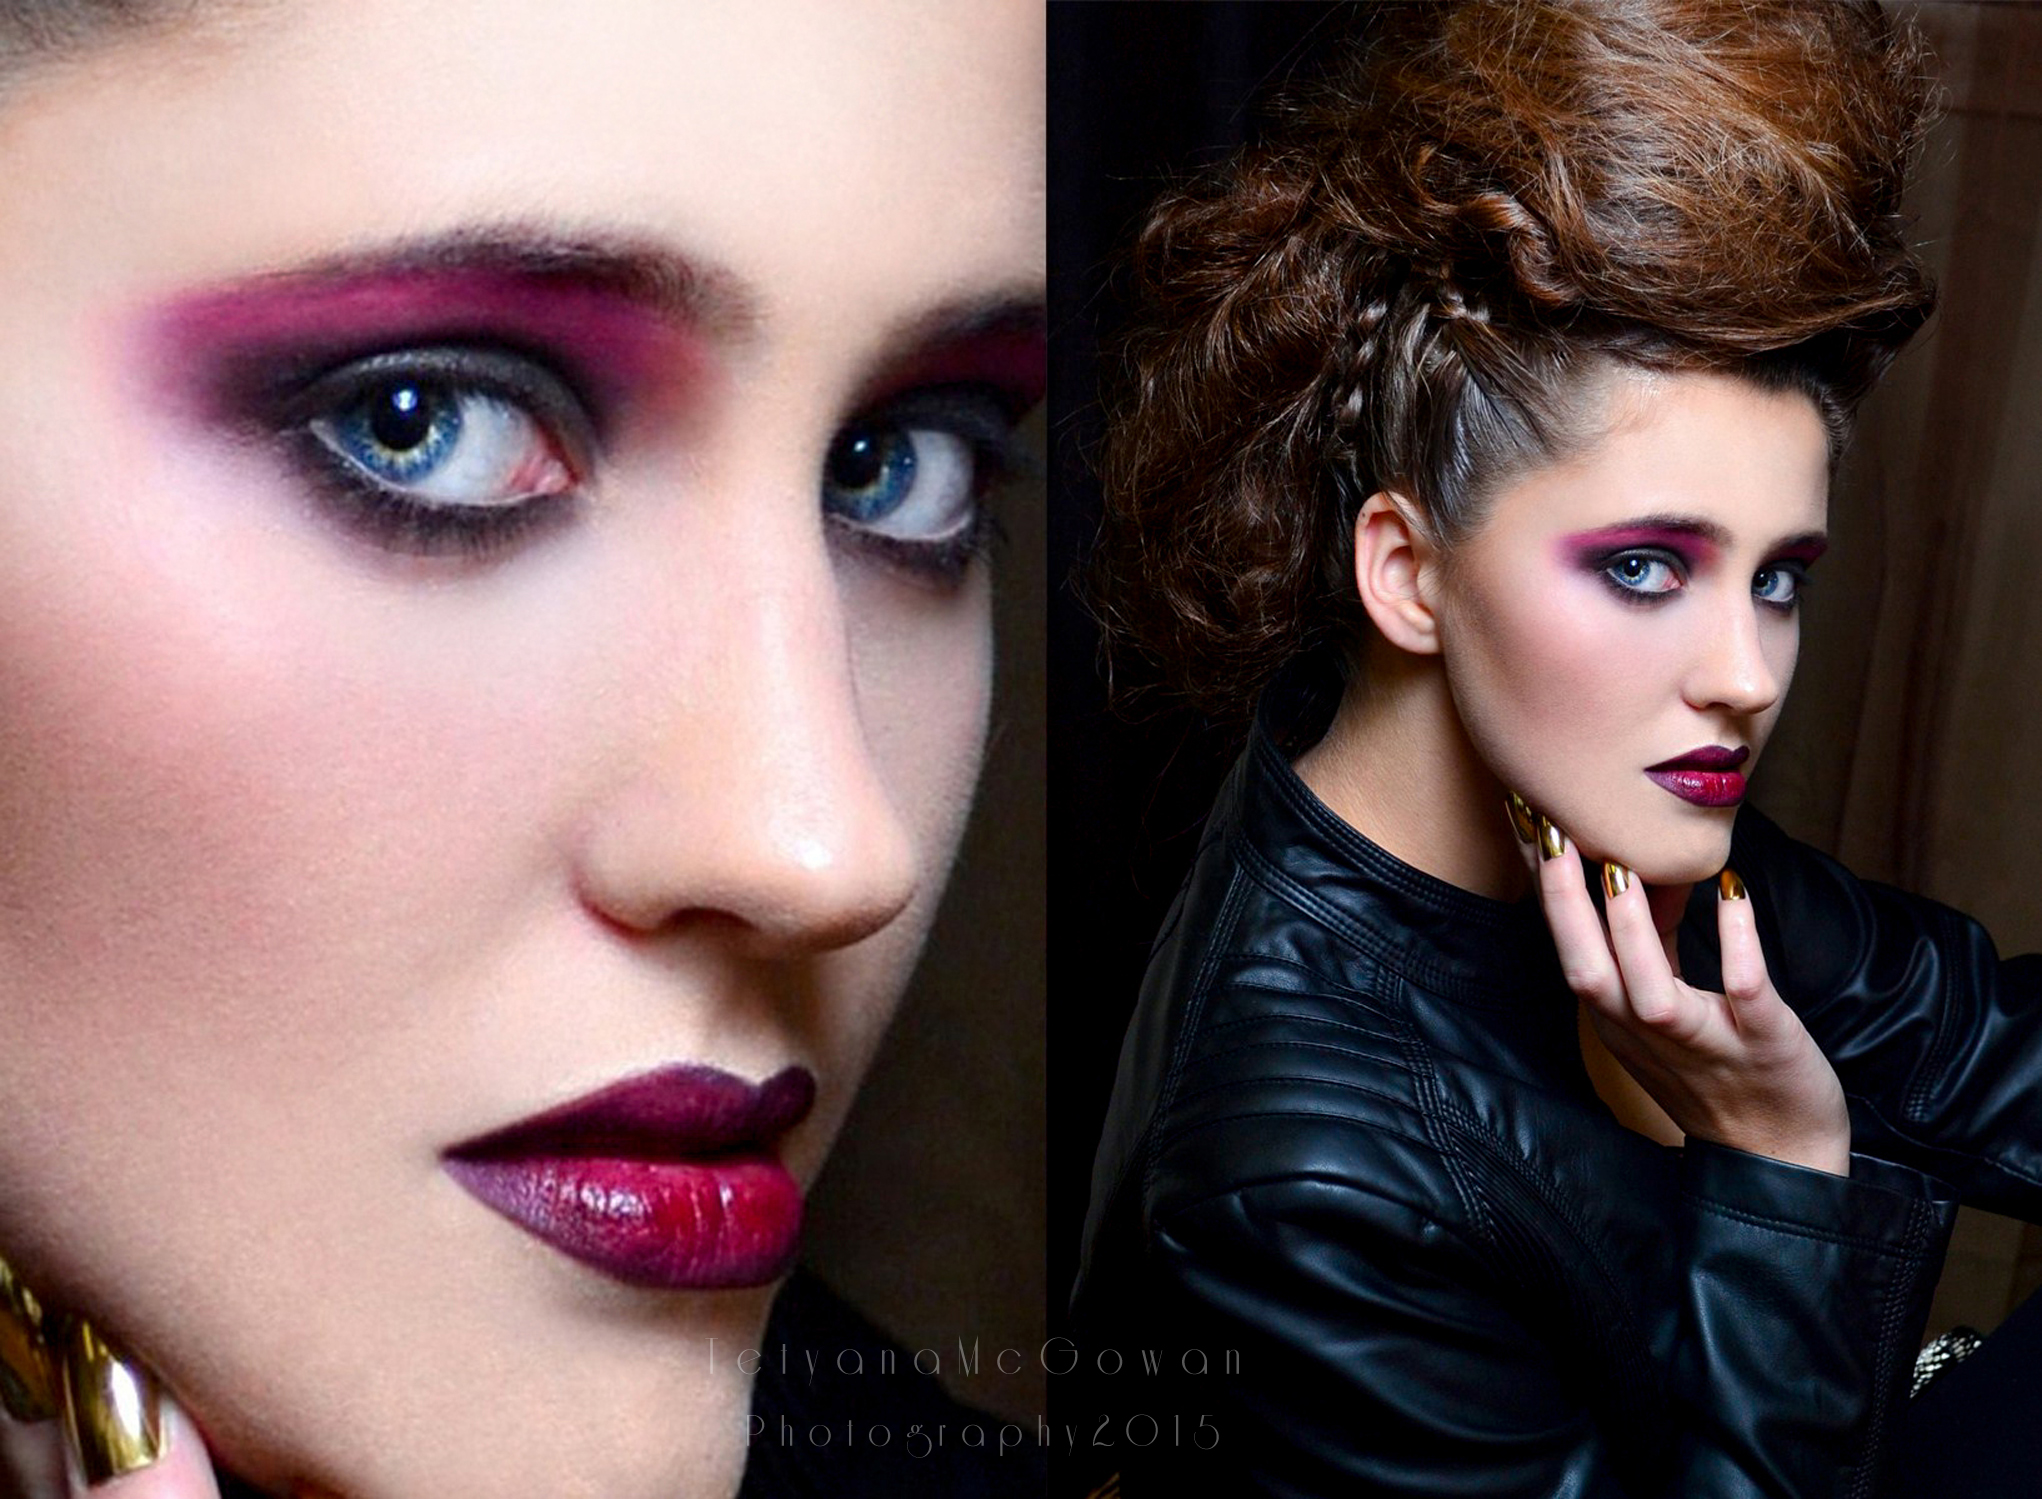 Toledo Ohio Makeup Artist. Makeup by Amy Lewis. Published in Ellements Magazine 2015. Photography by Tetyana McGowan 1.jpg